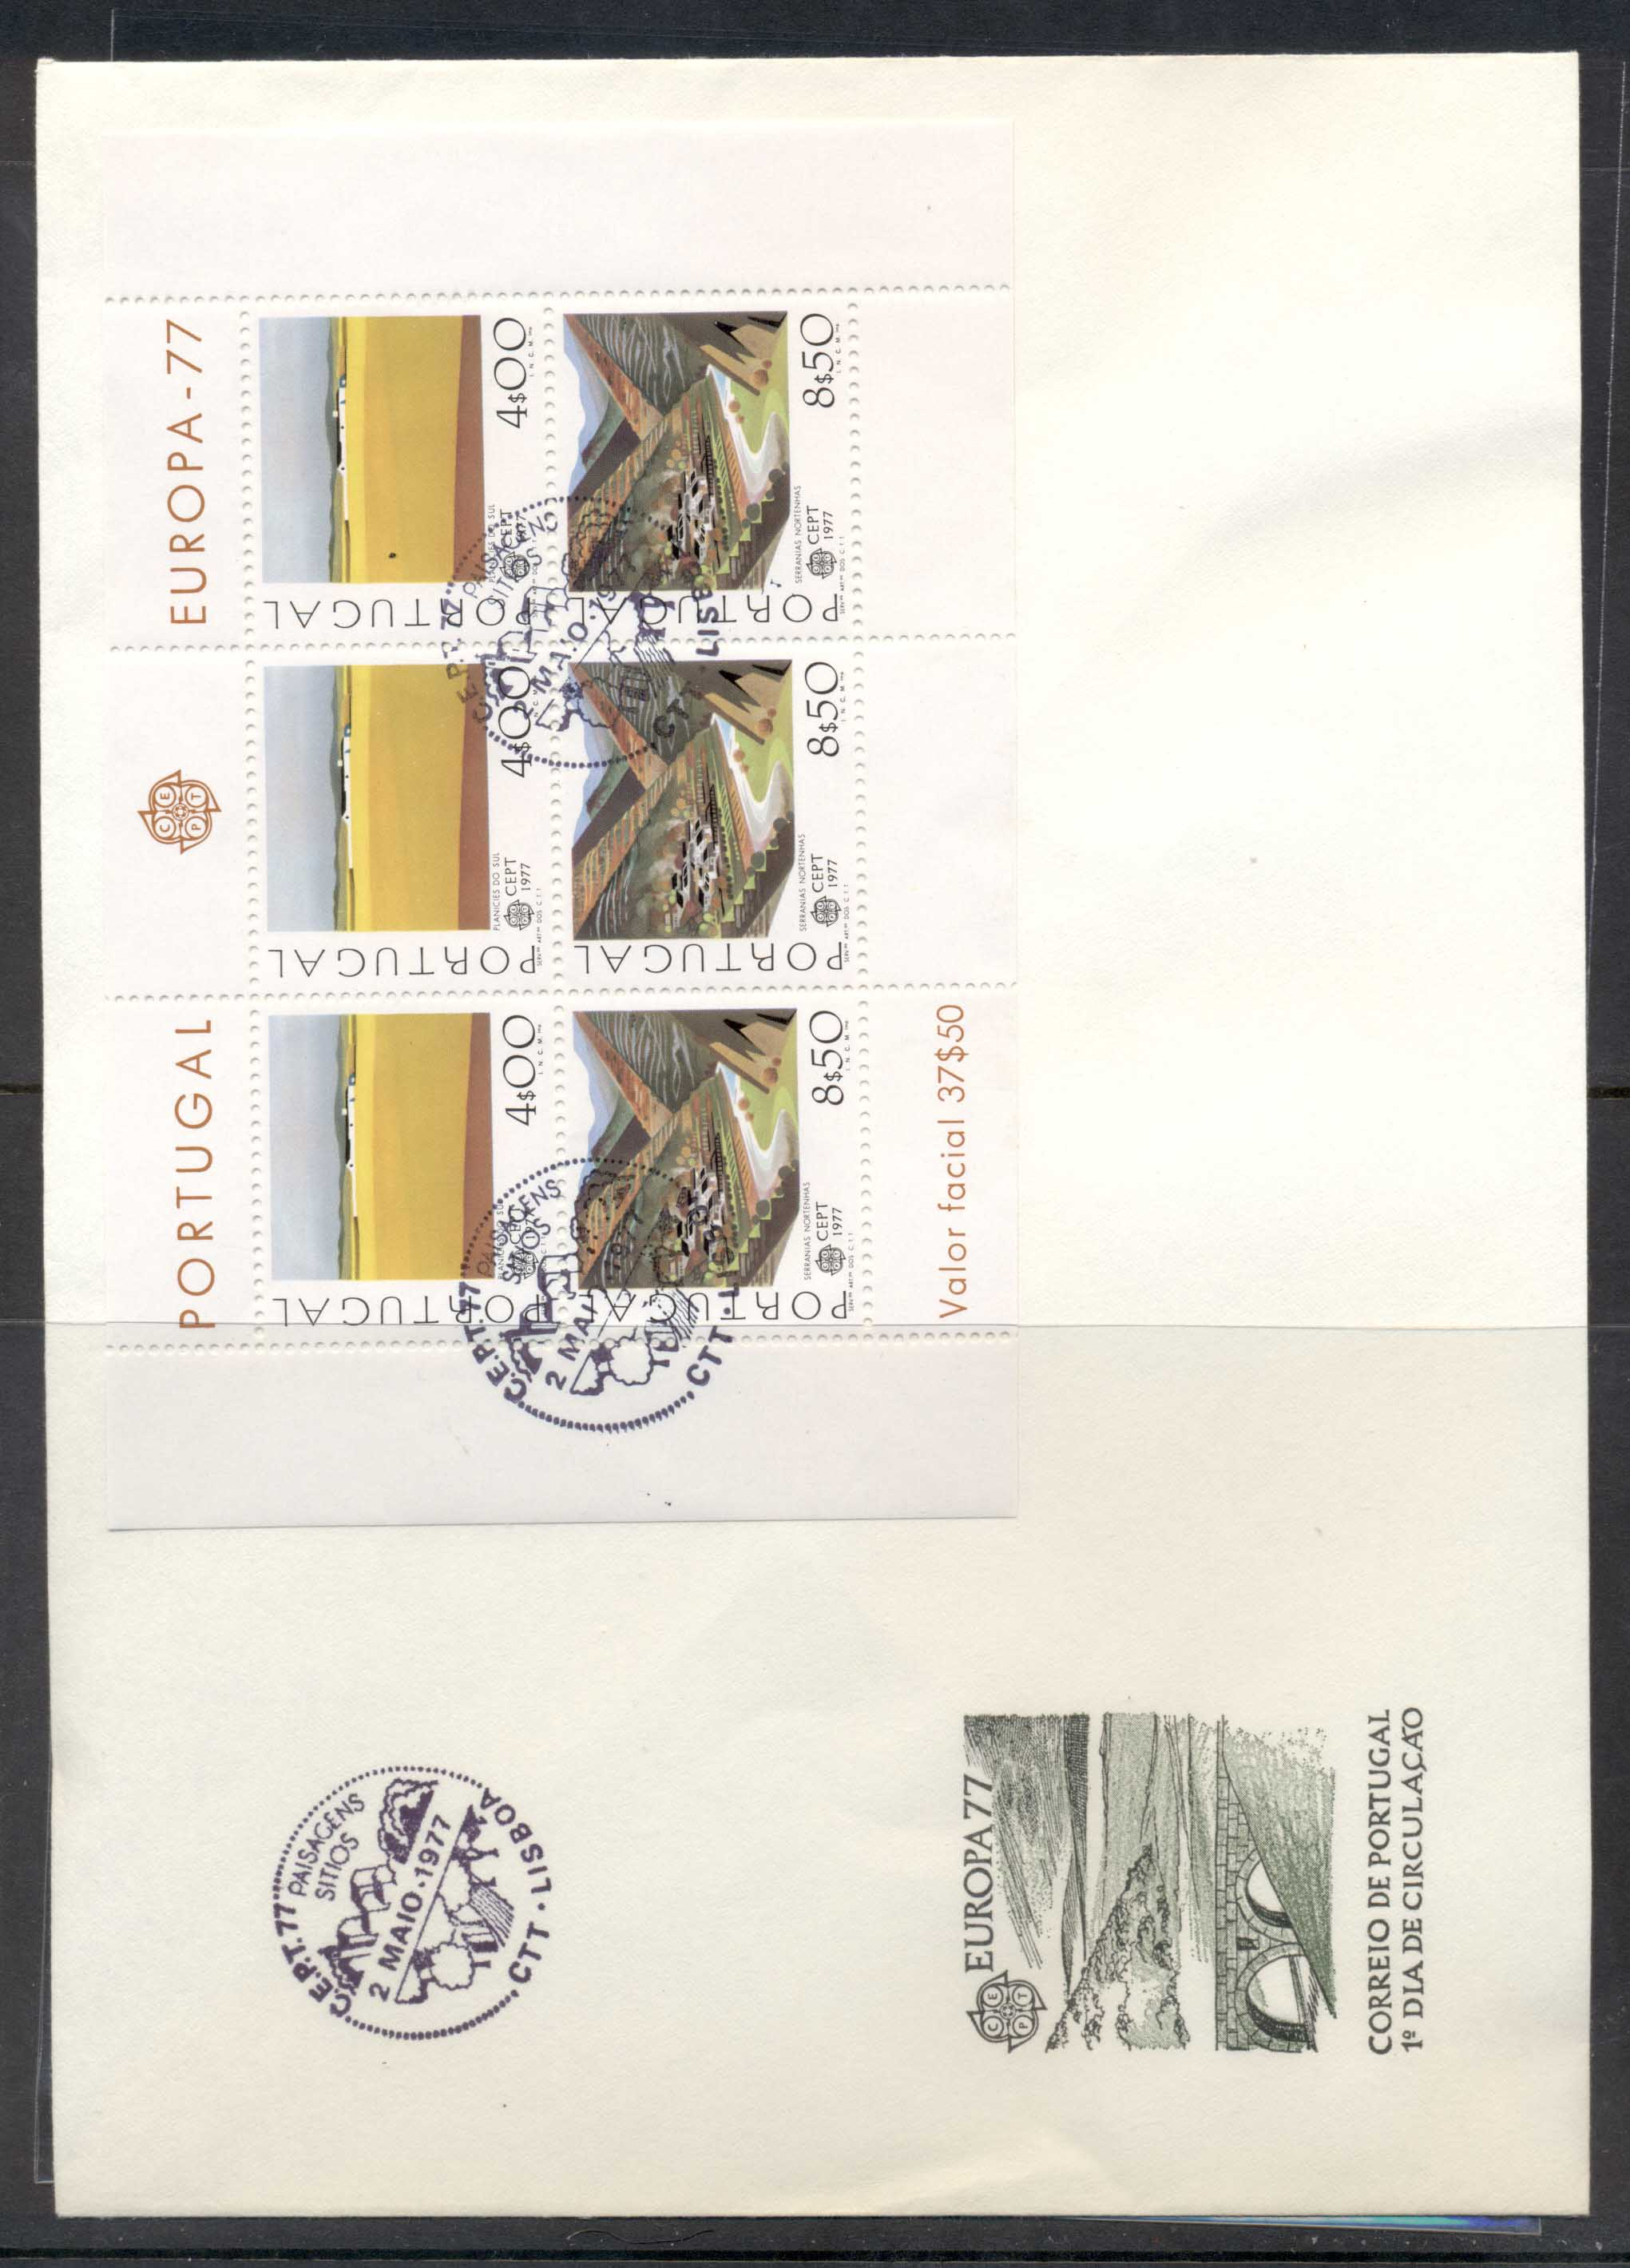 Portugal 1977 Europa Landscapes XLMS FDC